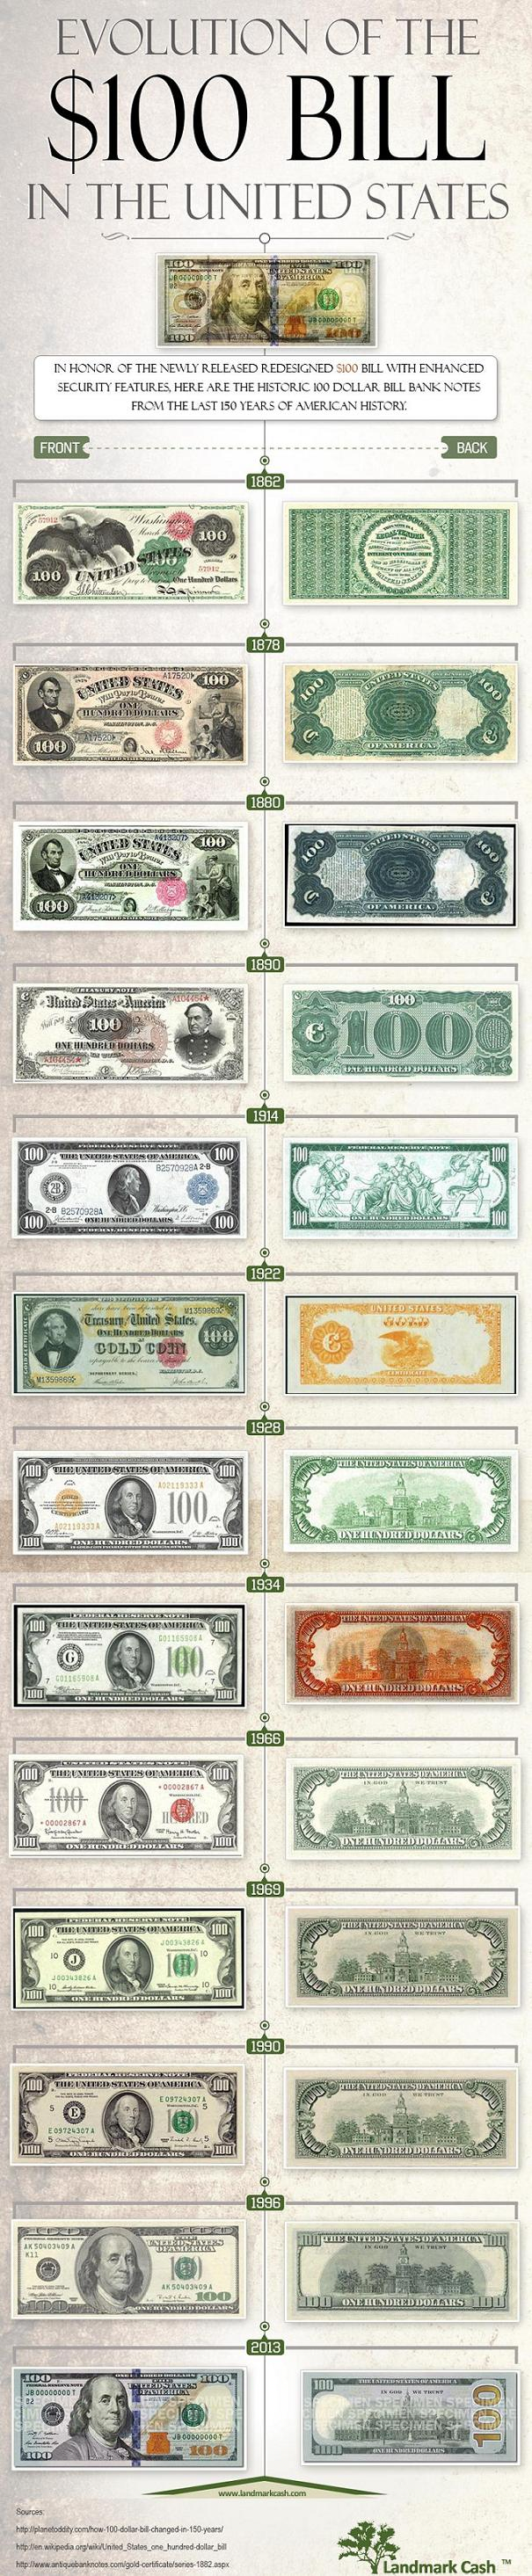 evolution-of-the-100-dollar-bill-in-the-united-states_5277c6a58e4b8